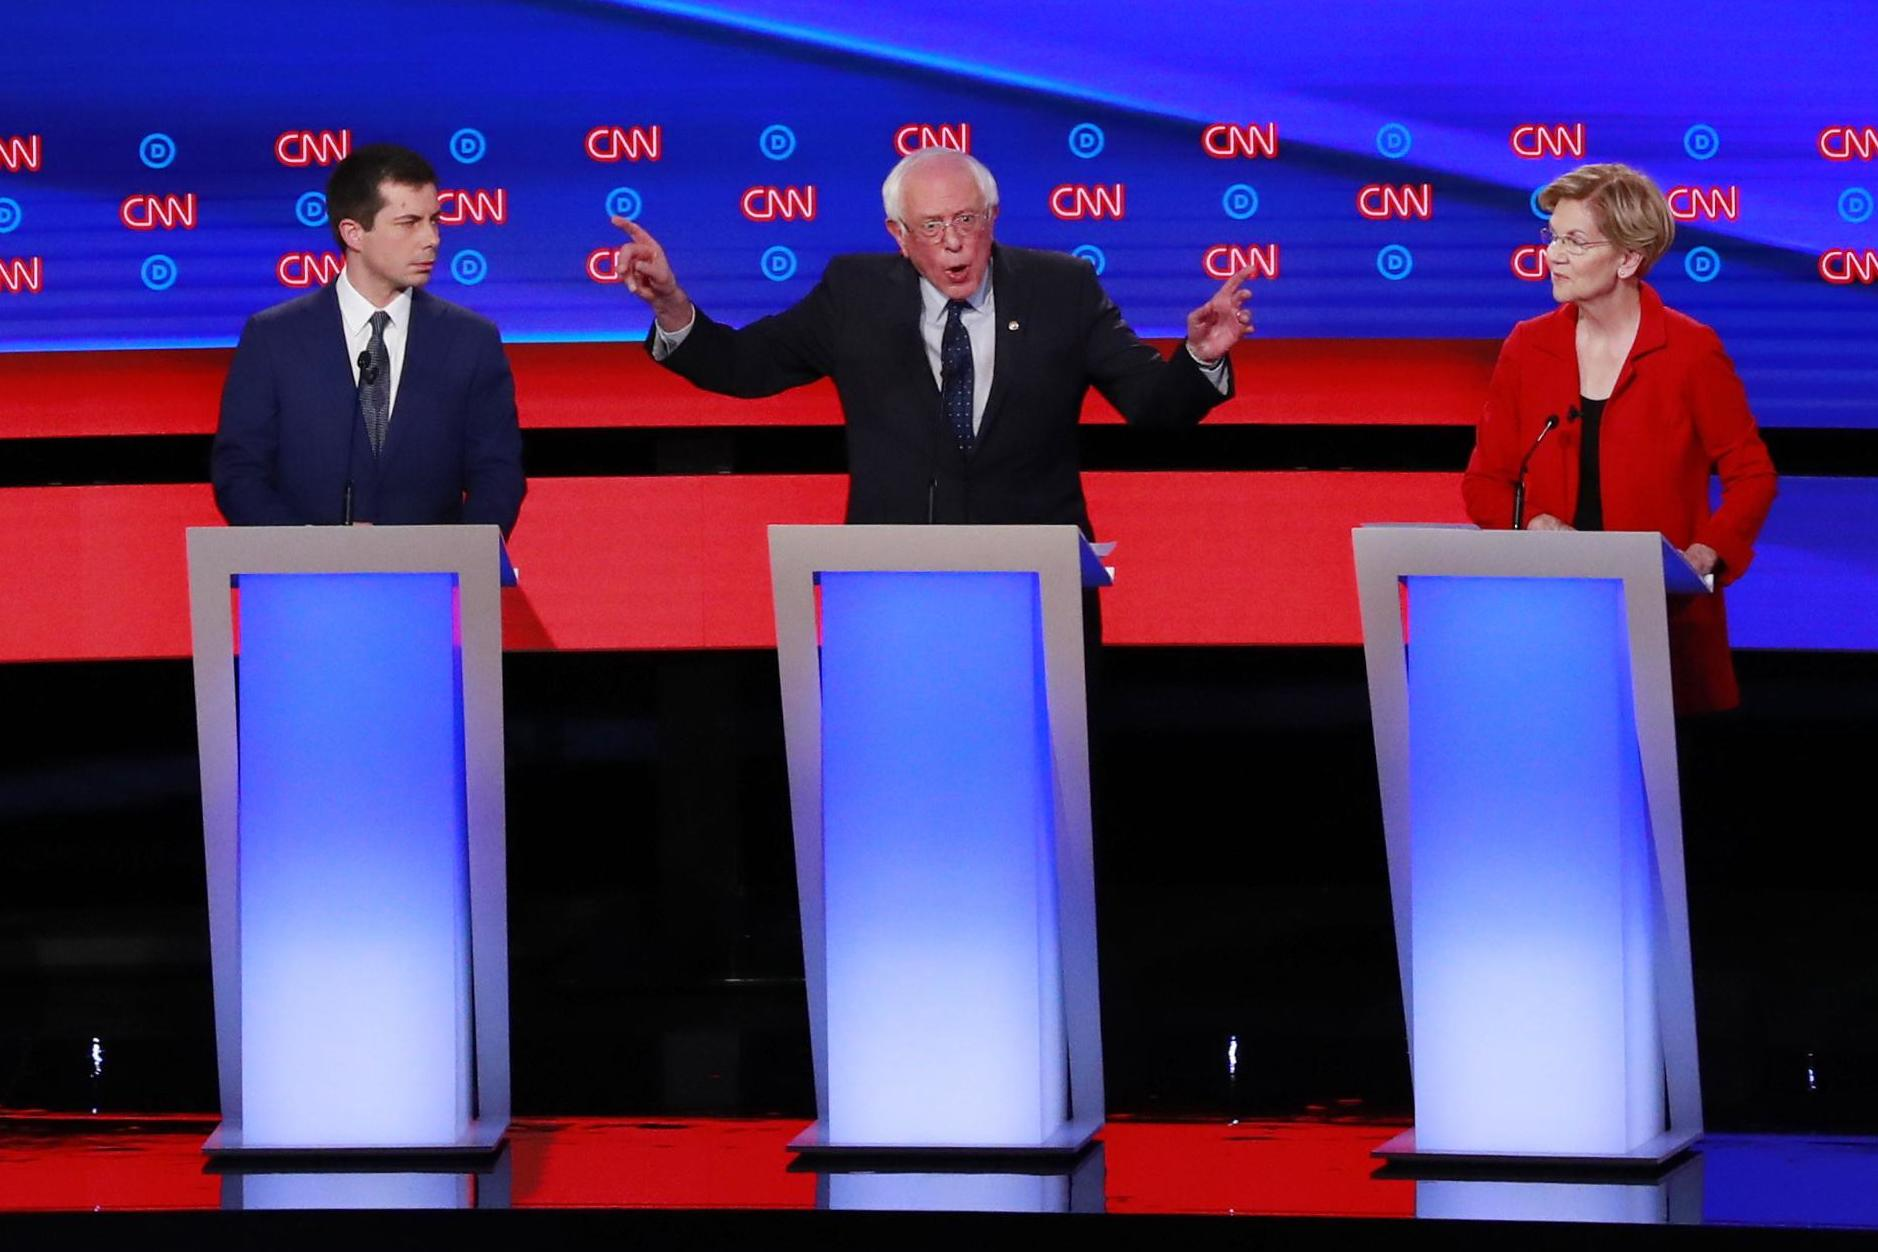 Democratic debate winners and losers: How did the 2020